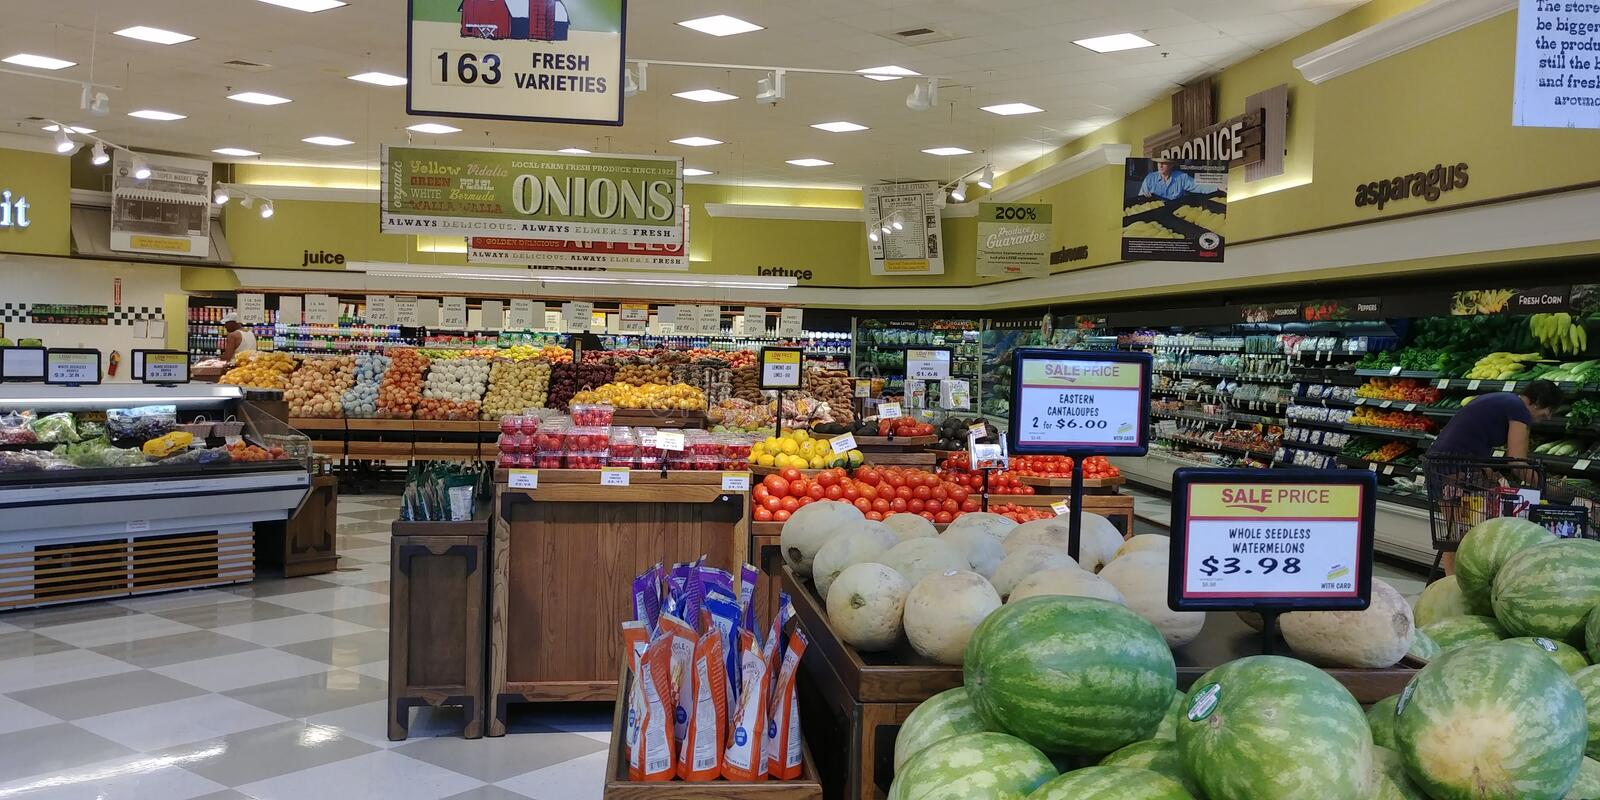 Produce are in supermarket. Produce area of supermarket showing watermelon, cantaloupe, tomatoes, onions. Sale price signs royalty free stock image